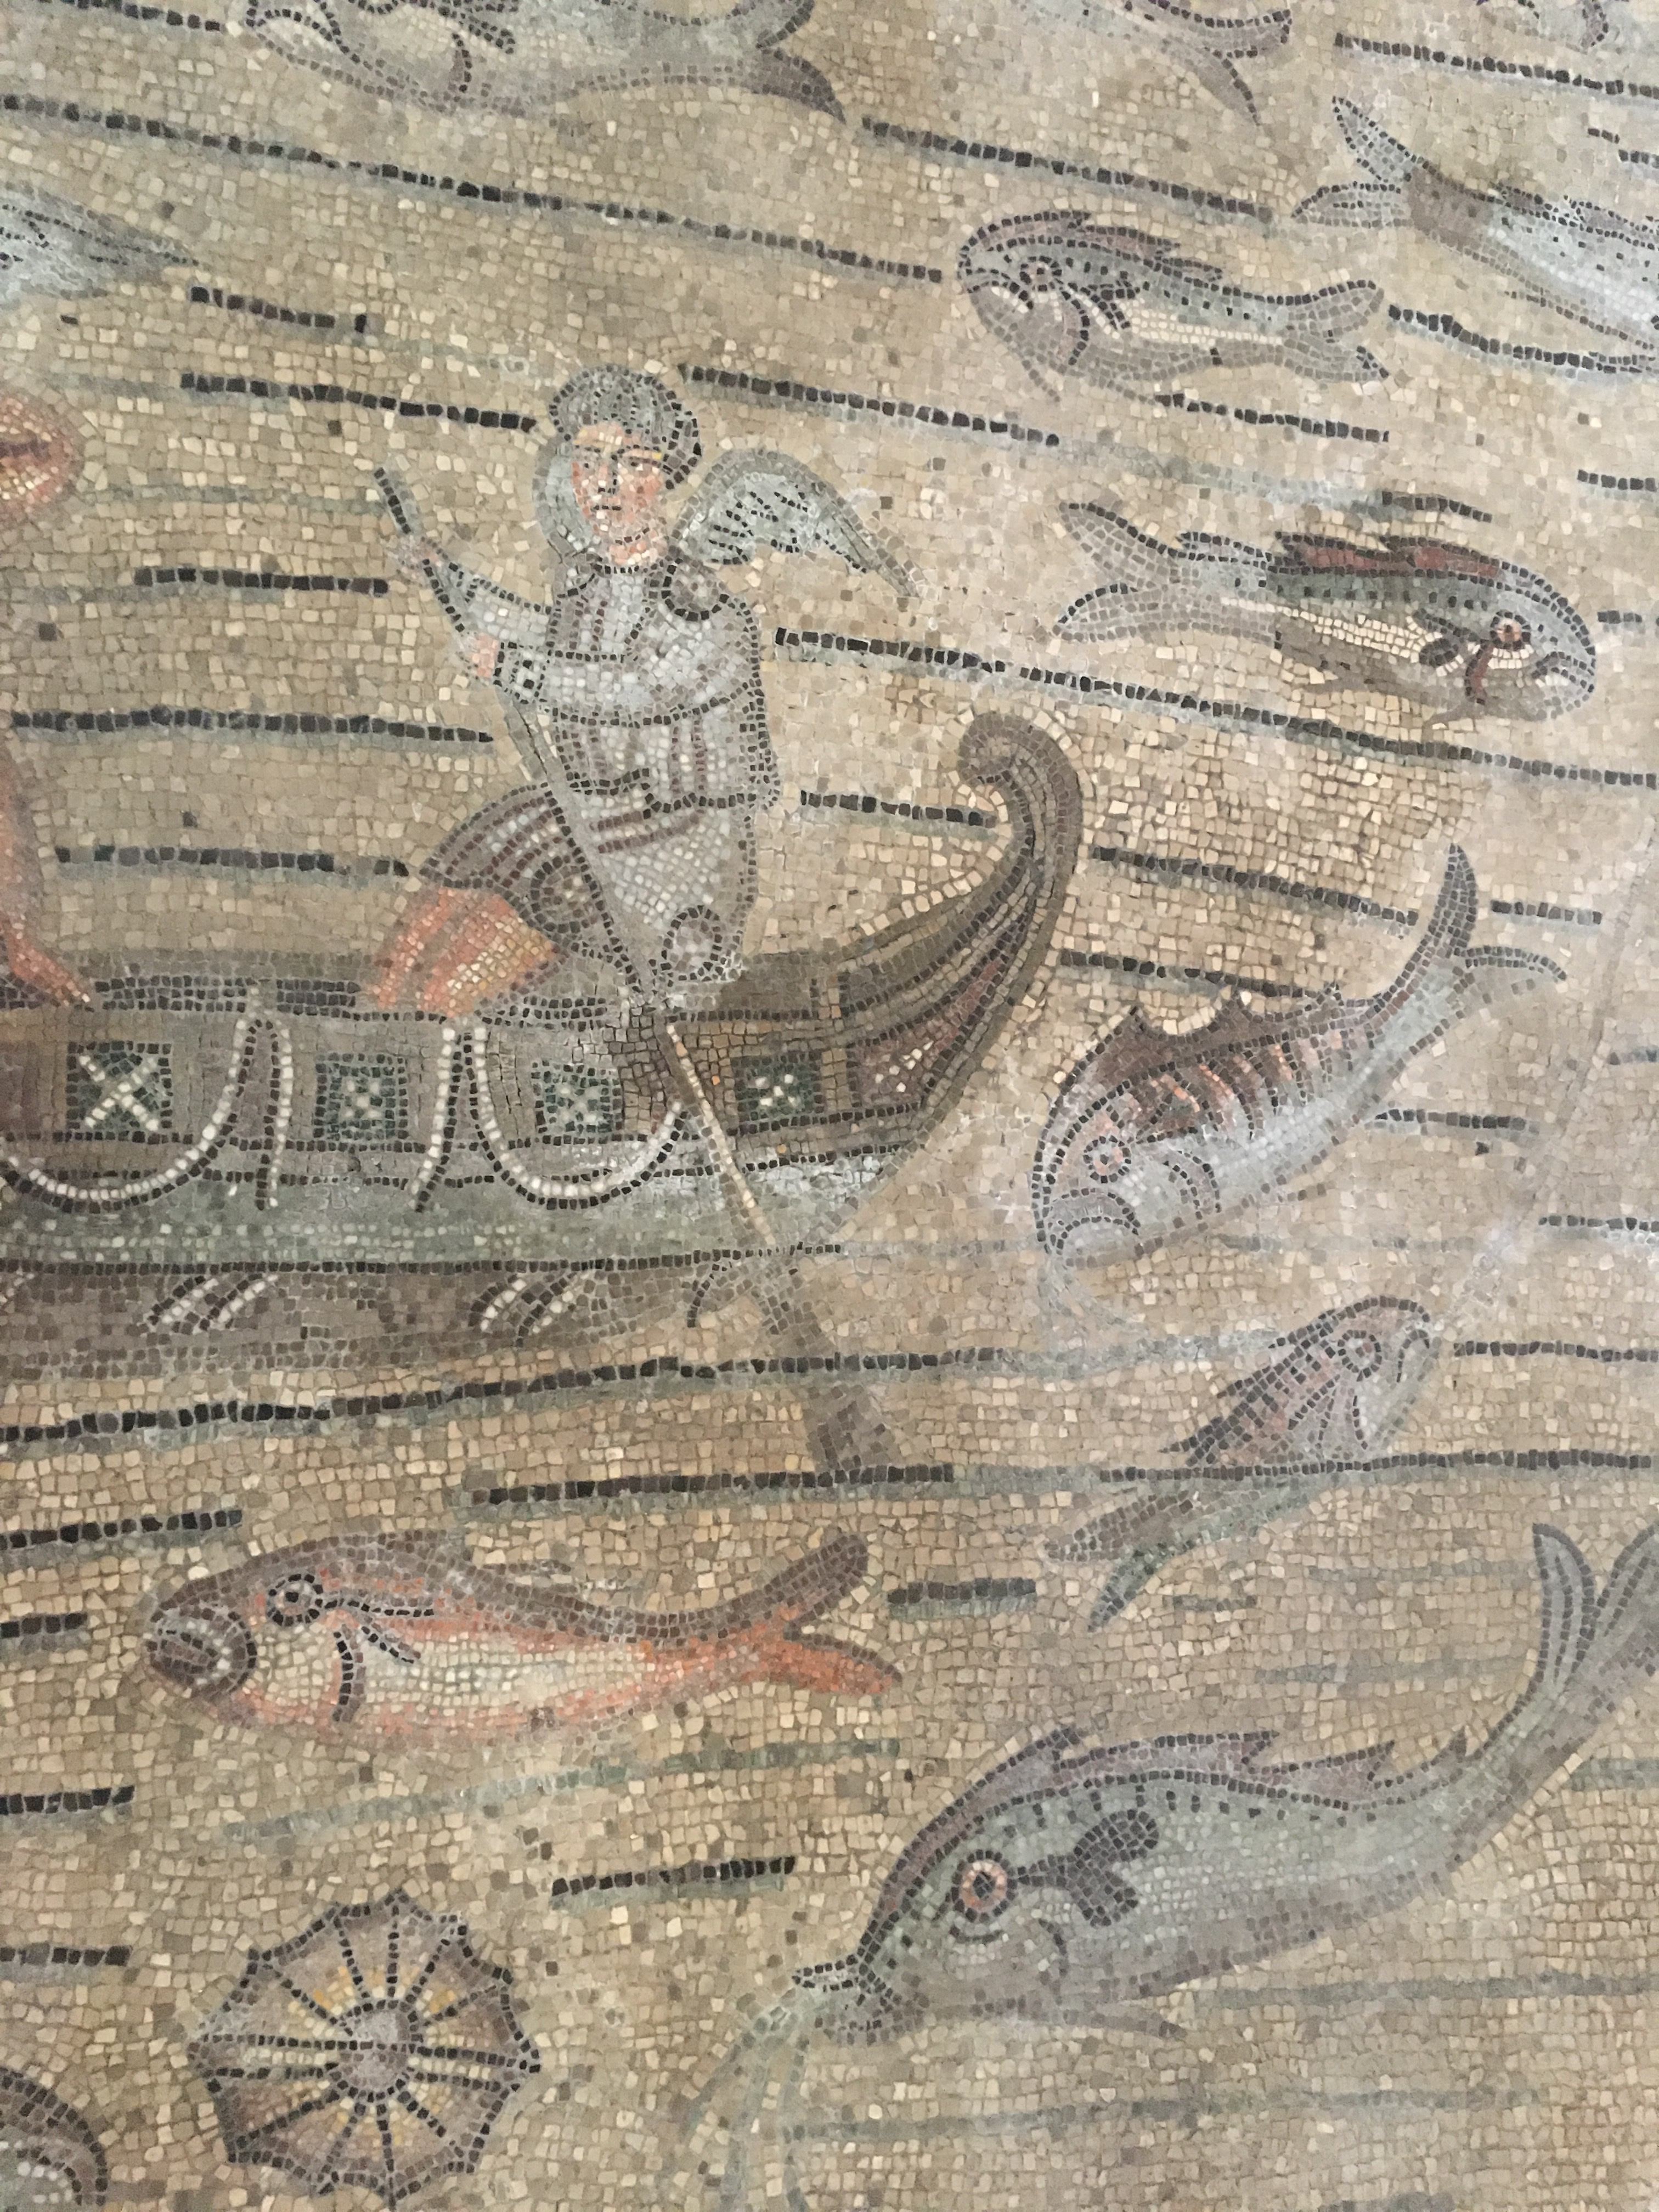 Aquileia - roman mosaics, the details are quite extraordinary. Dating from 4th century AD - an angelic fisherman surrounded by a rich harvest of souls! www.educated-traveller.com